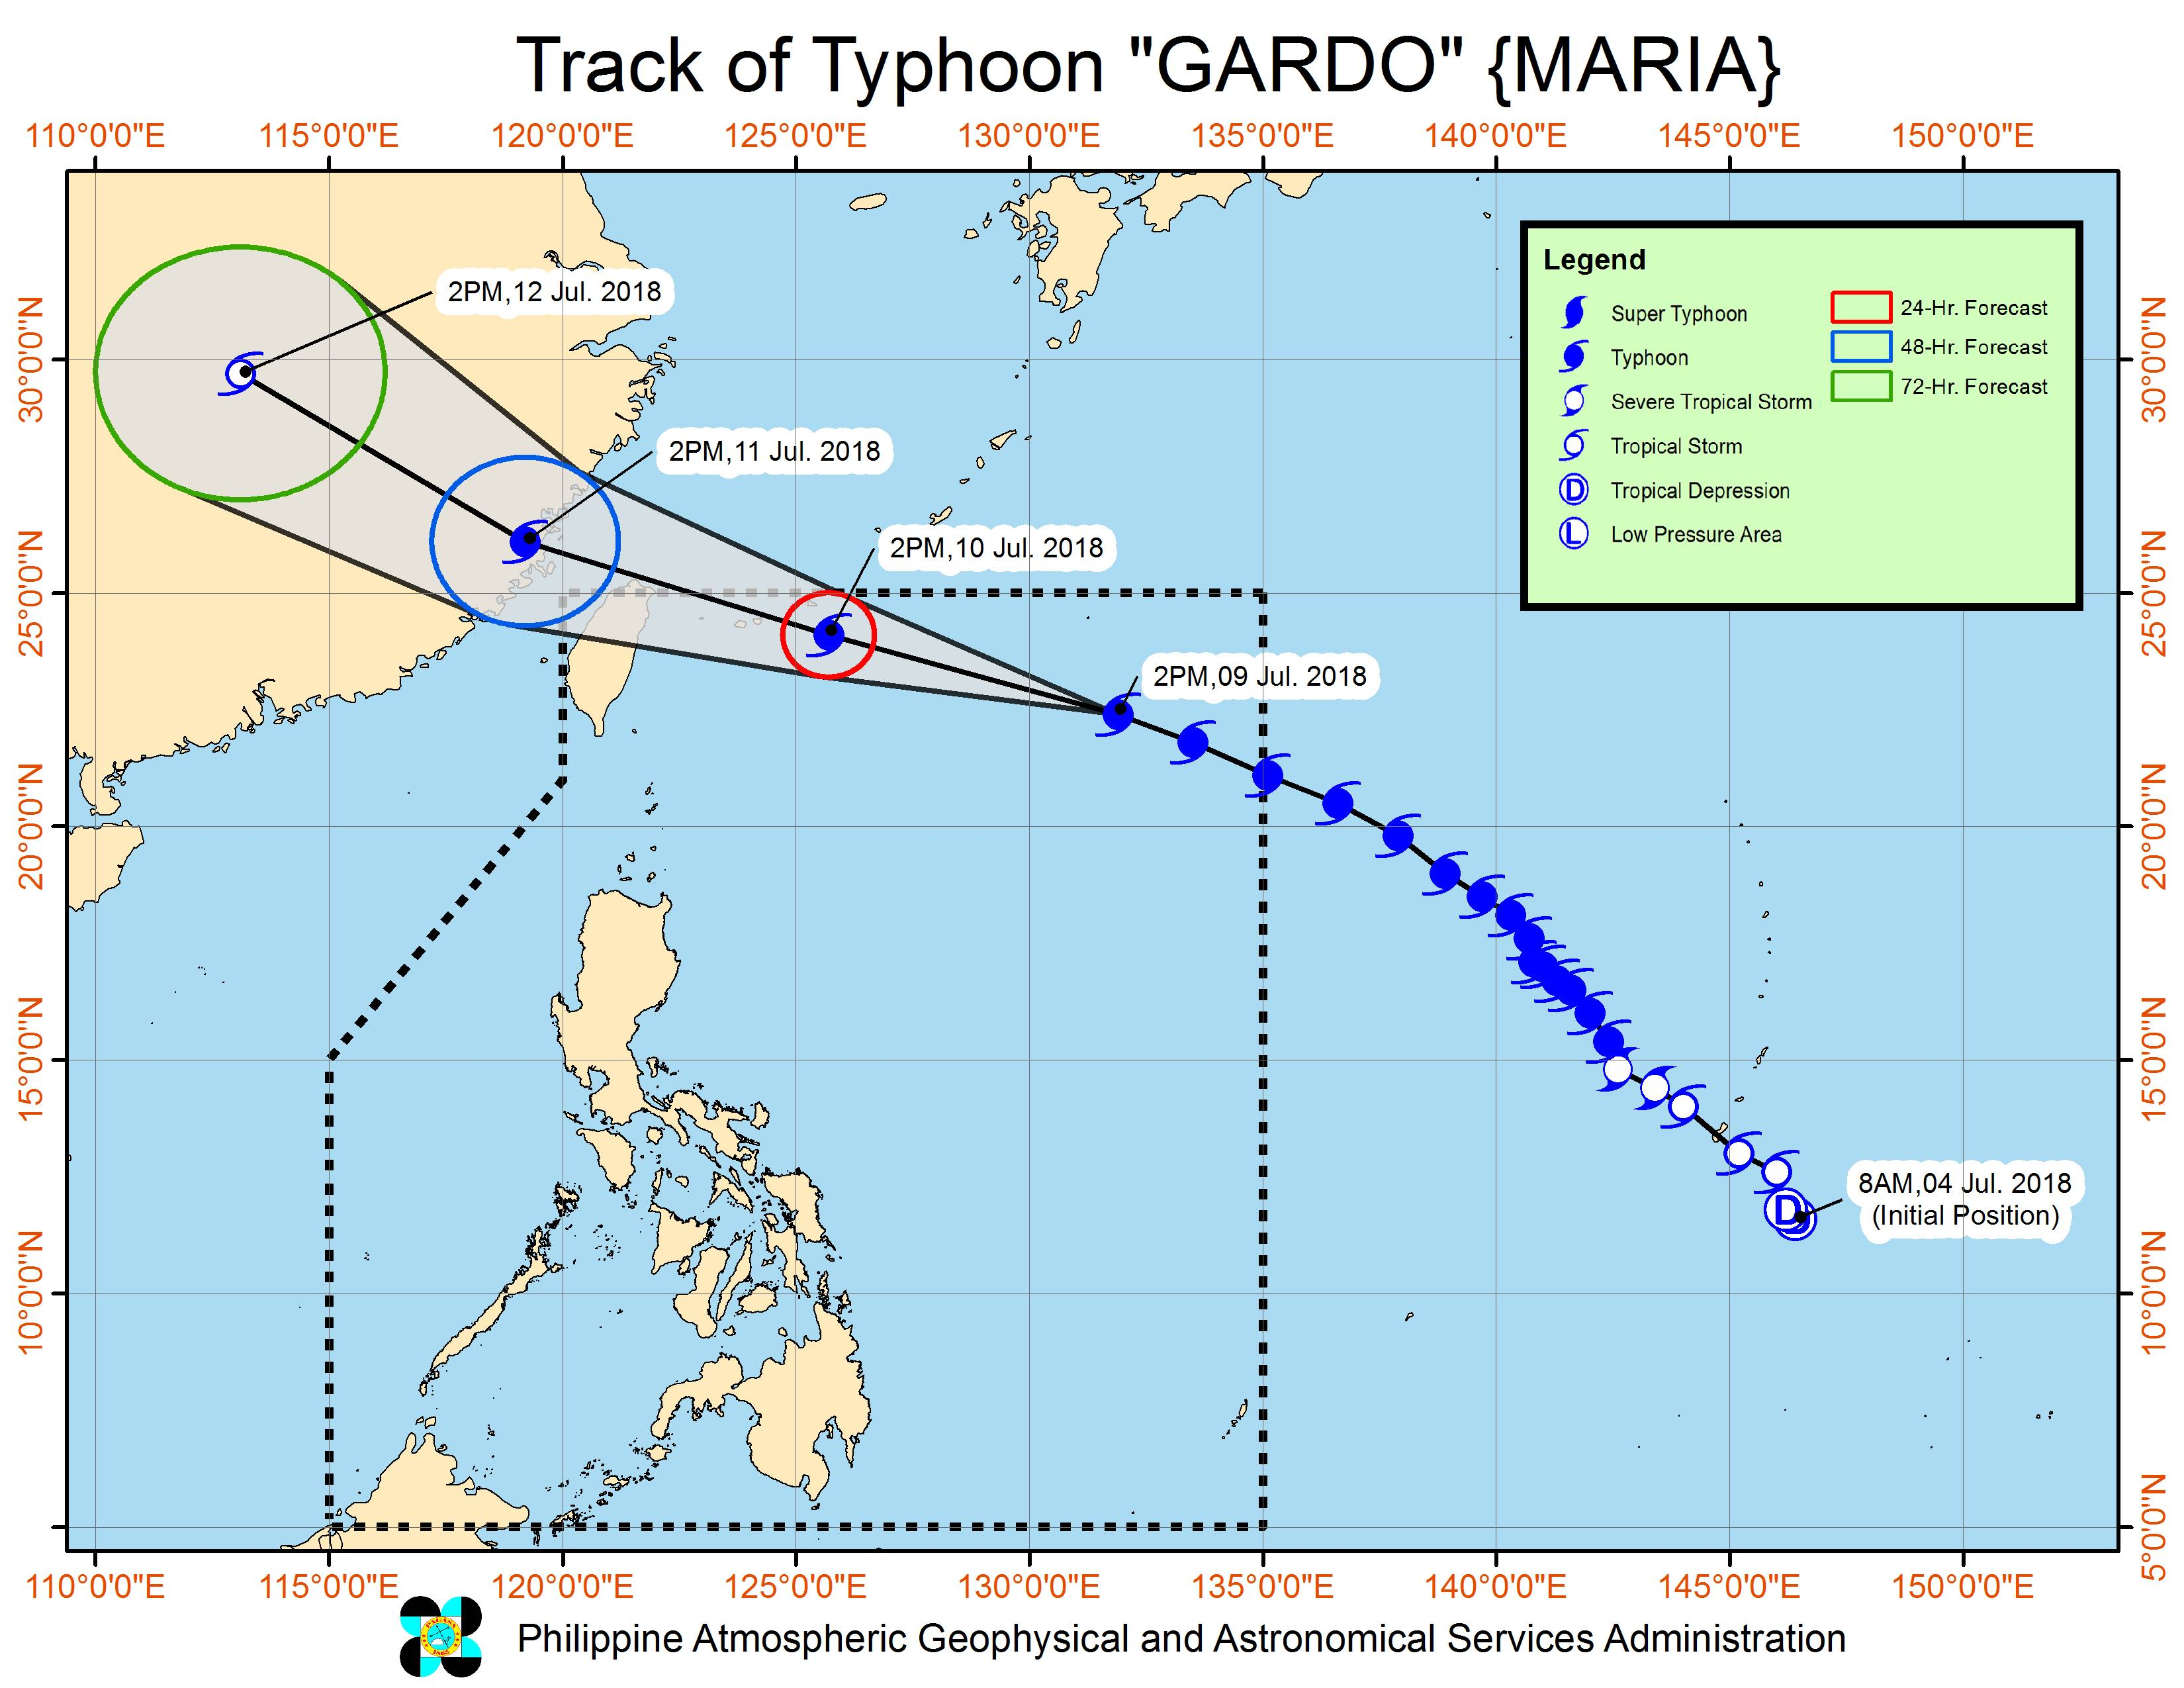 Forecast track of Typhoon Gardo (Maria) as of July 9, 2018, 5 pm. Image courtesy of PAGASA